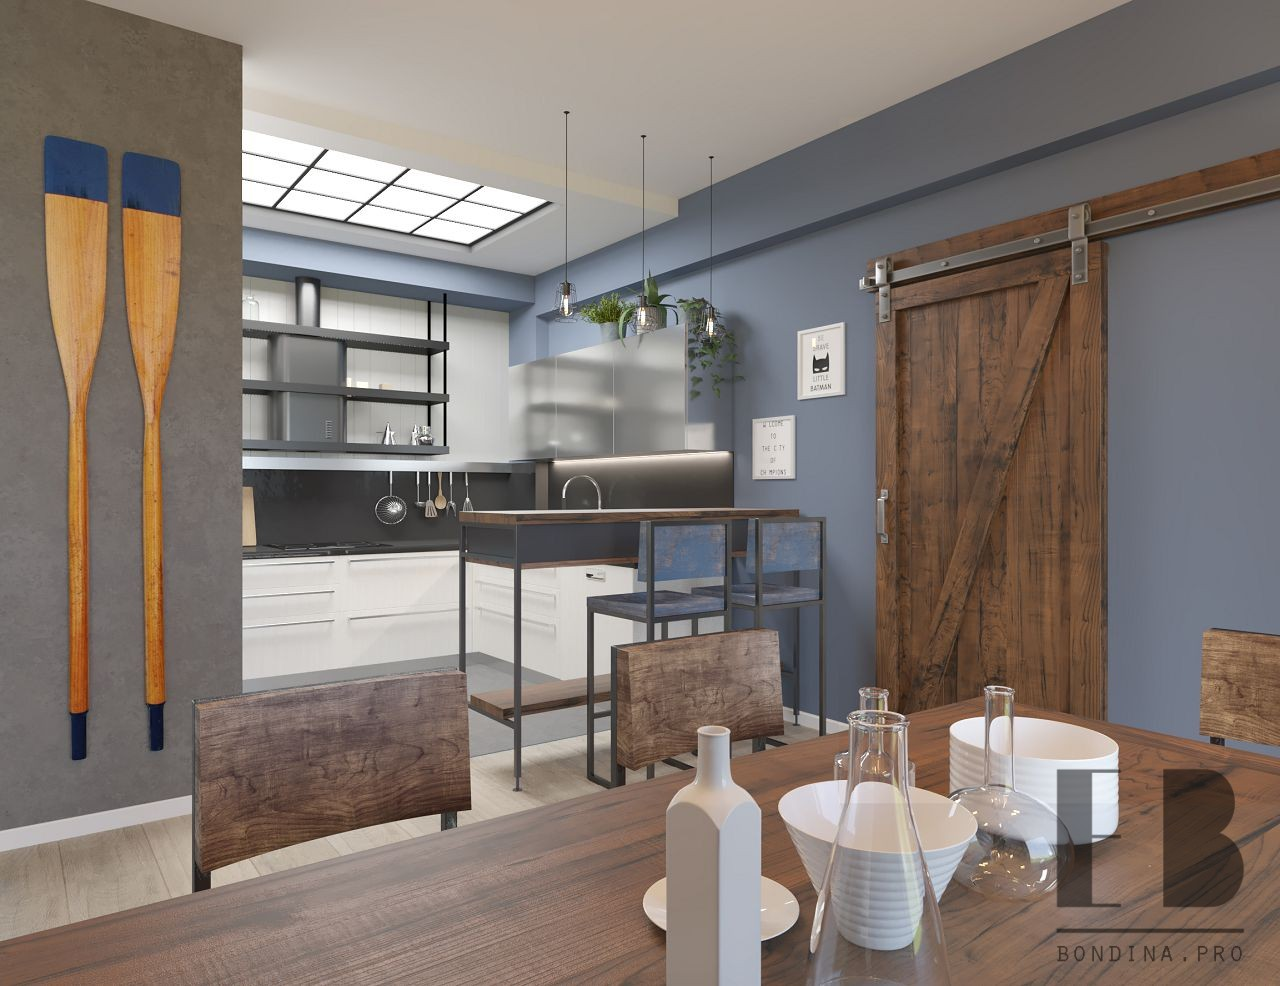 Loft style kitchen interior design